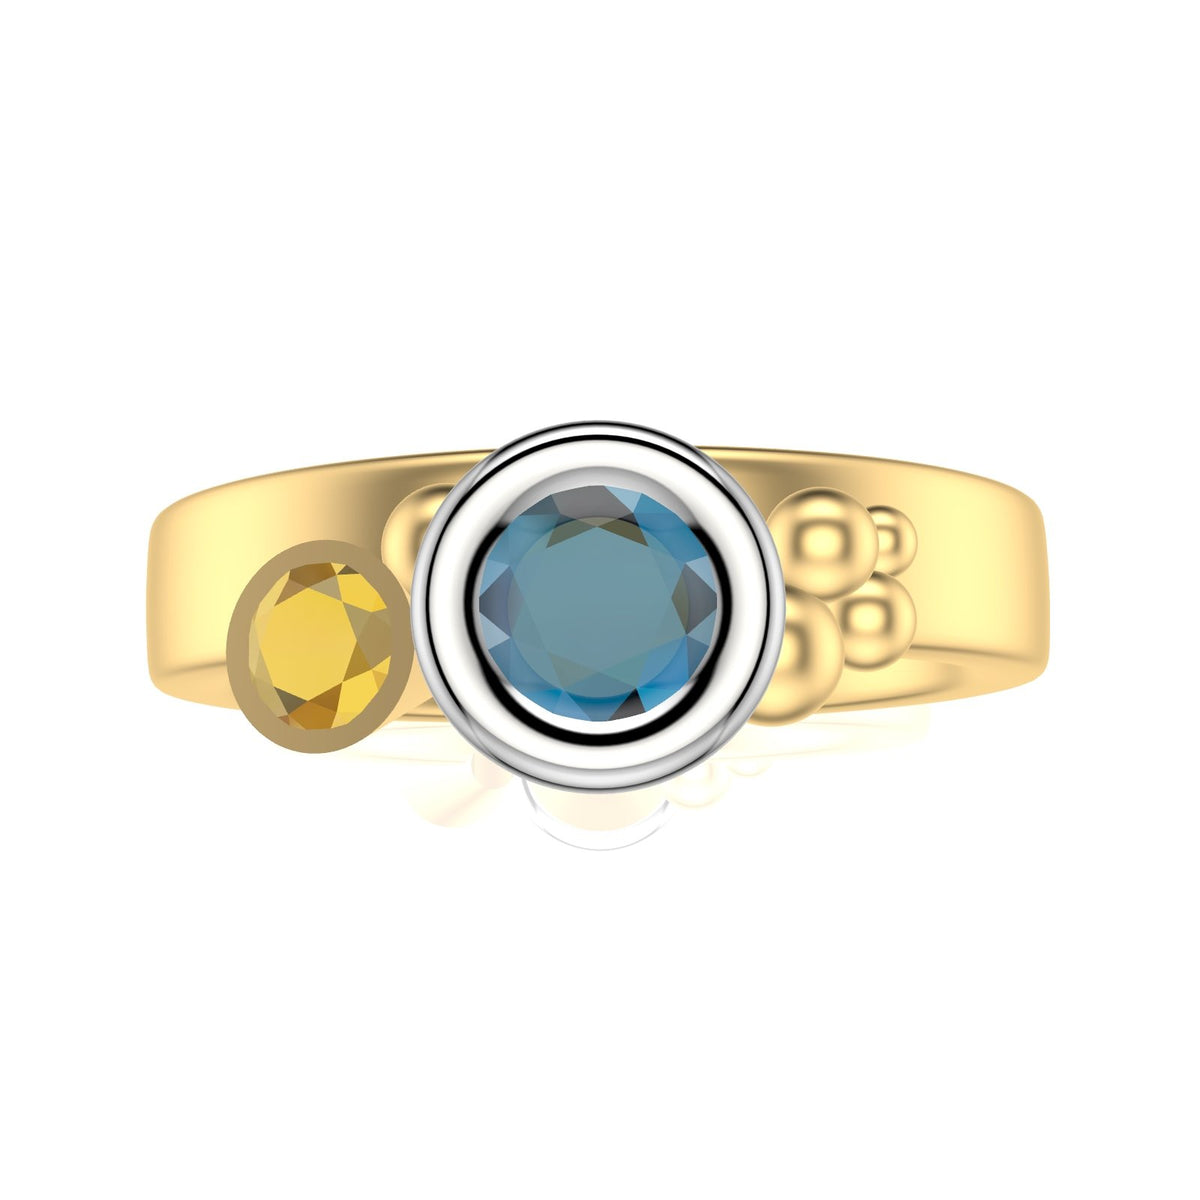 Sea Shore Shaped Stacker Ring | Yellow & White Gold 4mm Wide Flat Band | With A Blue Zircon, Tanzanite Or Yellow Sapphire Accent Stones And Little Diamonds